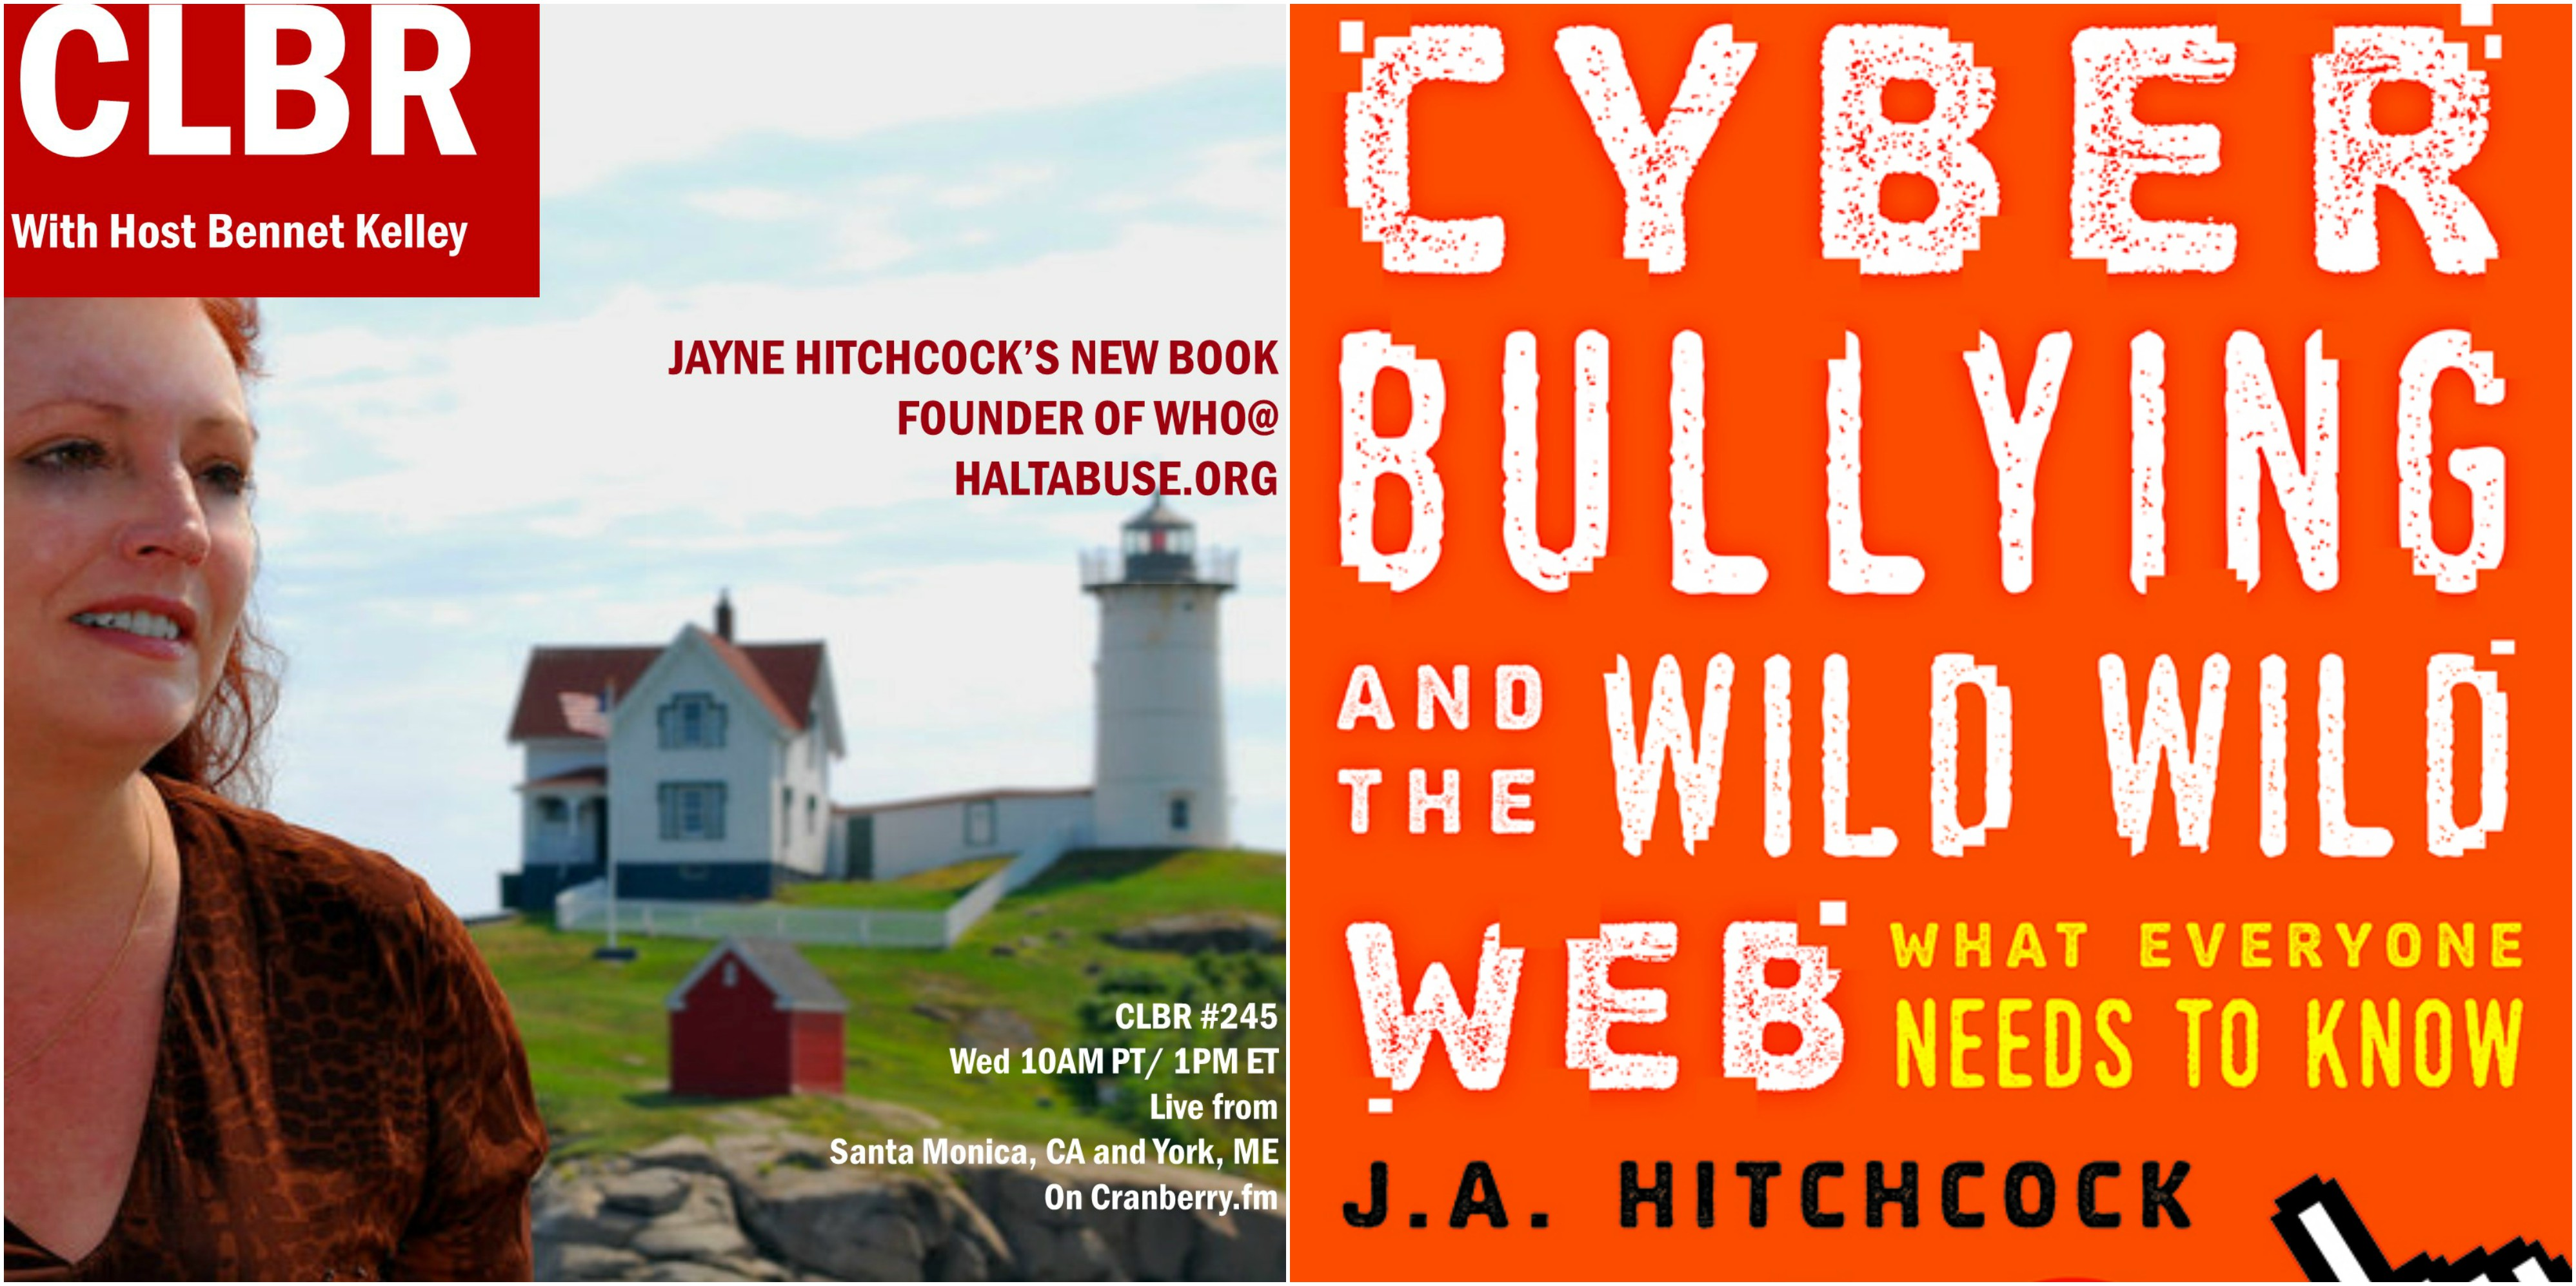 CLBR #245: Jayne Hitchcock Returns To Discuss Cyber Bullying and the Wild Wild Web